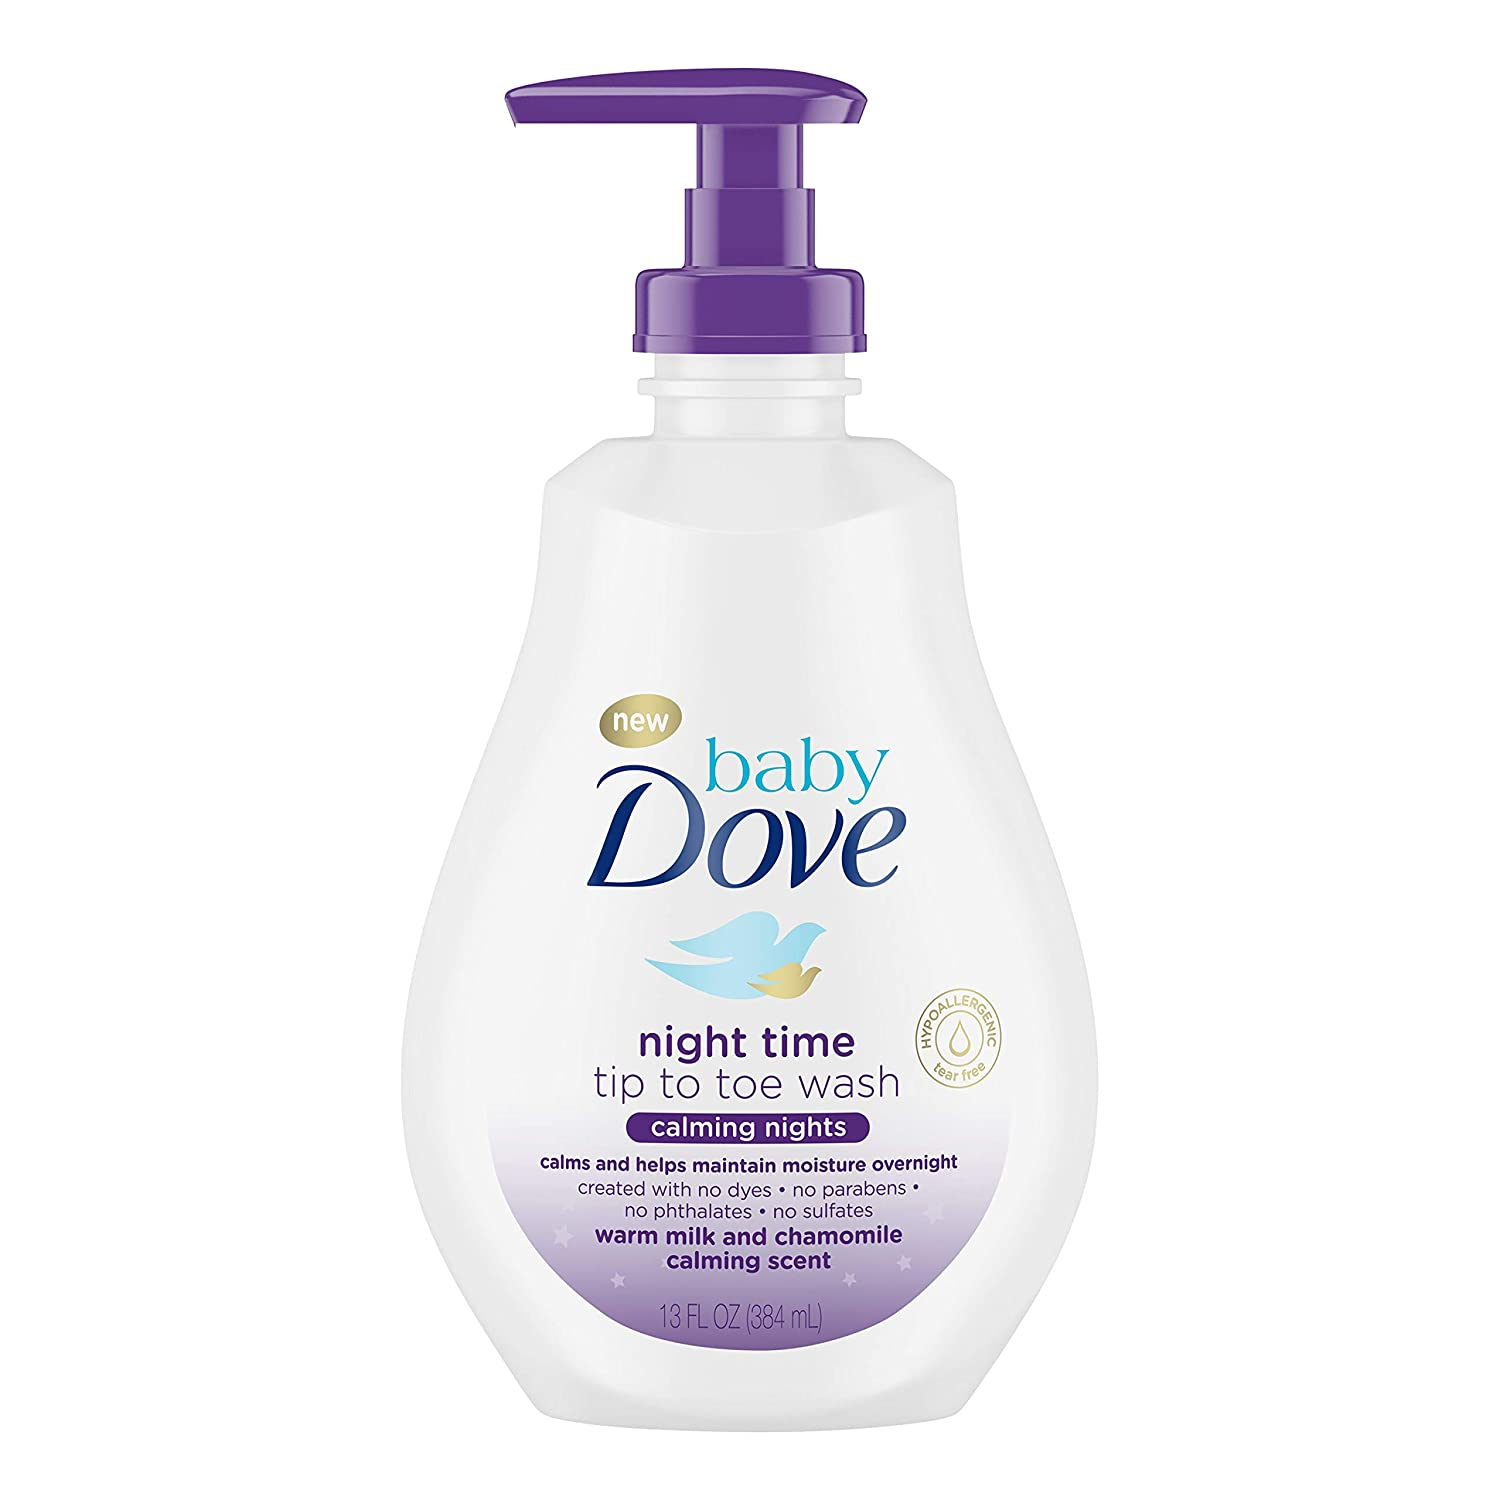 Baby Dove Tip to Toe Wash and Shampoo Calming Nights 13 oz Washes Away Bacteria While Nourishing Your Skin